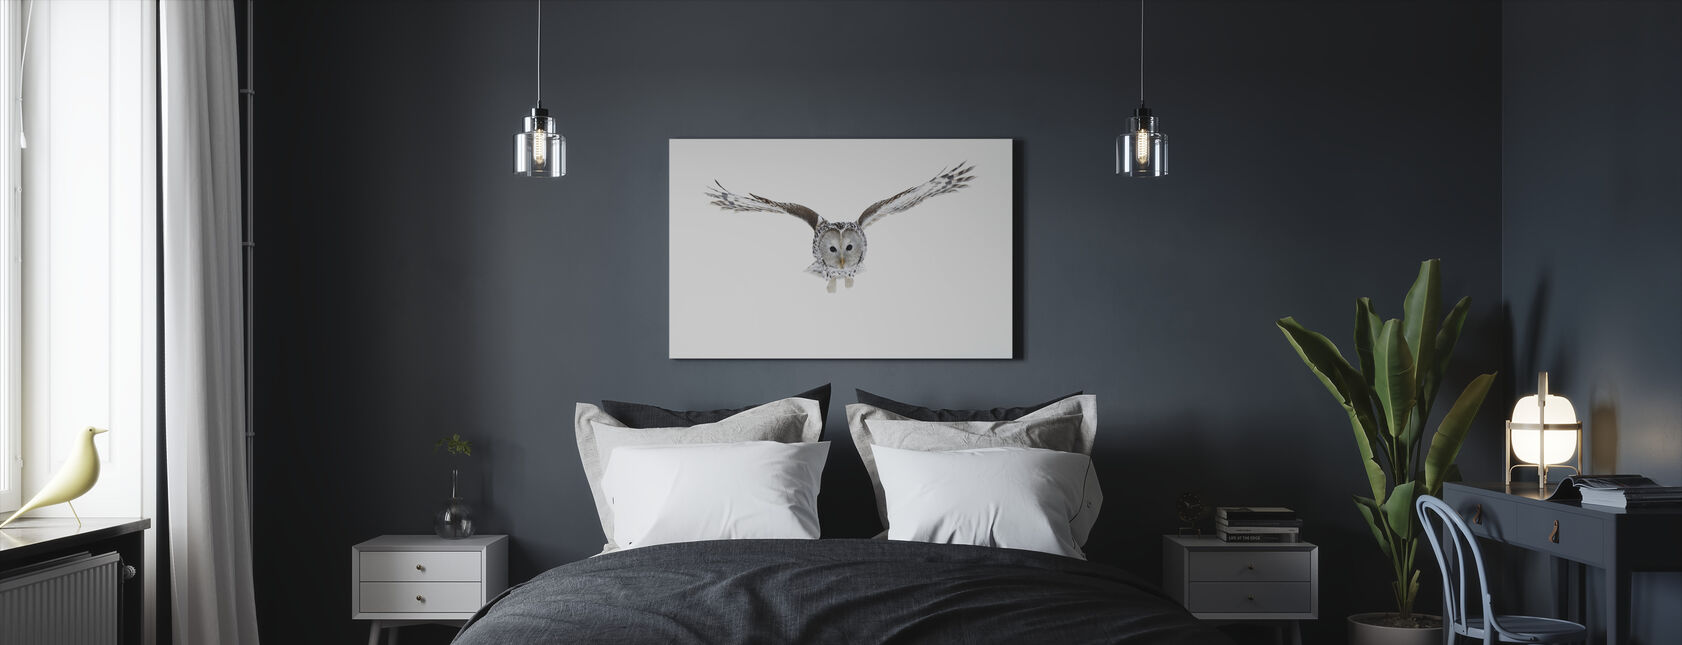 Flying Owl - Canvas print - Bedroom